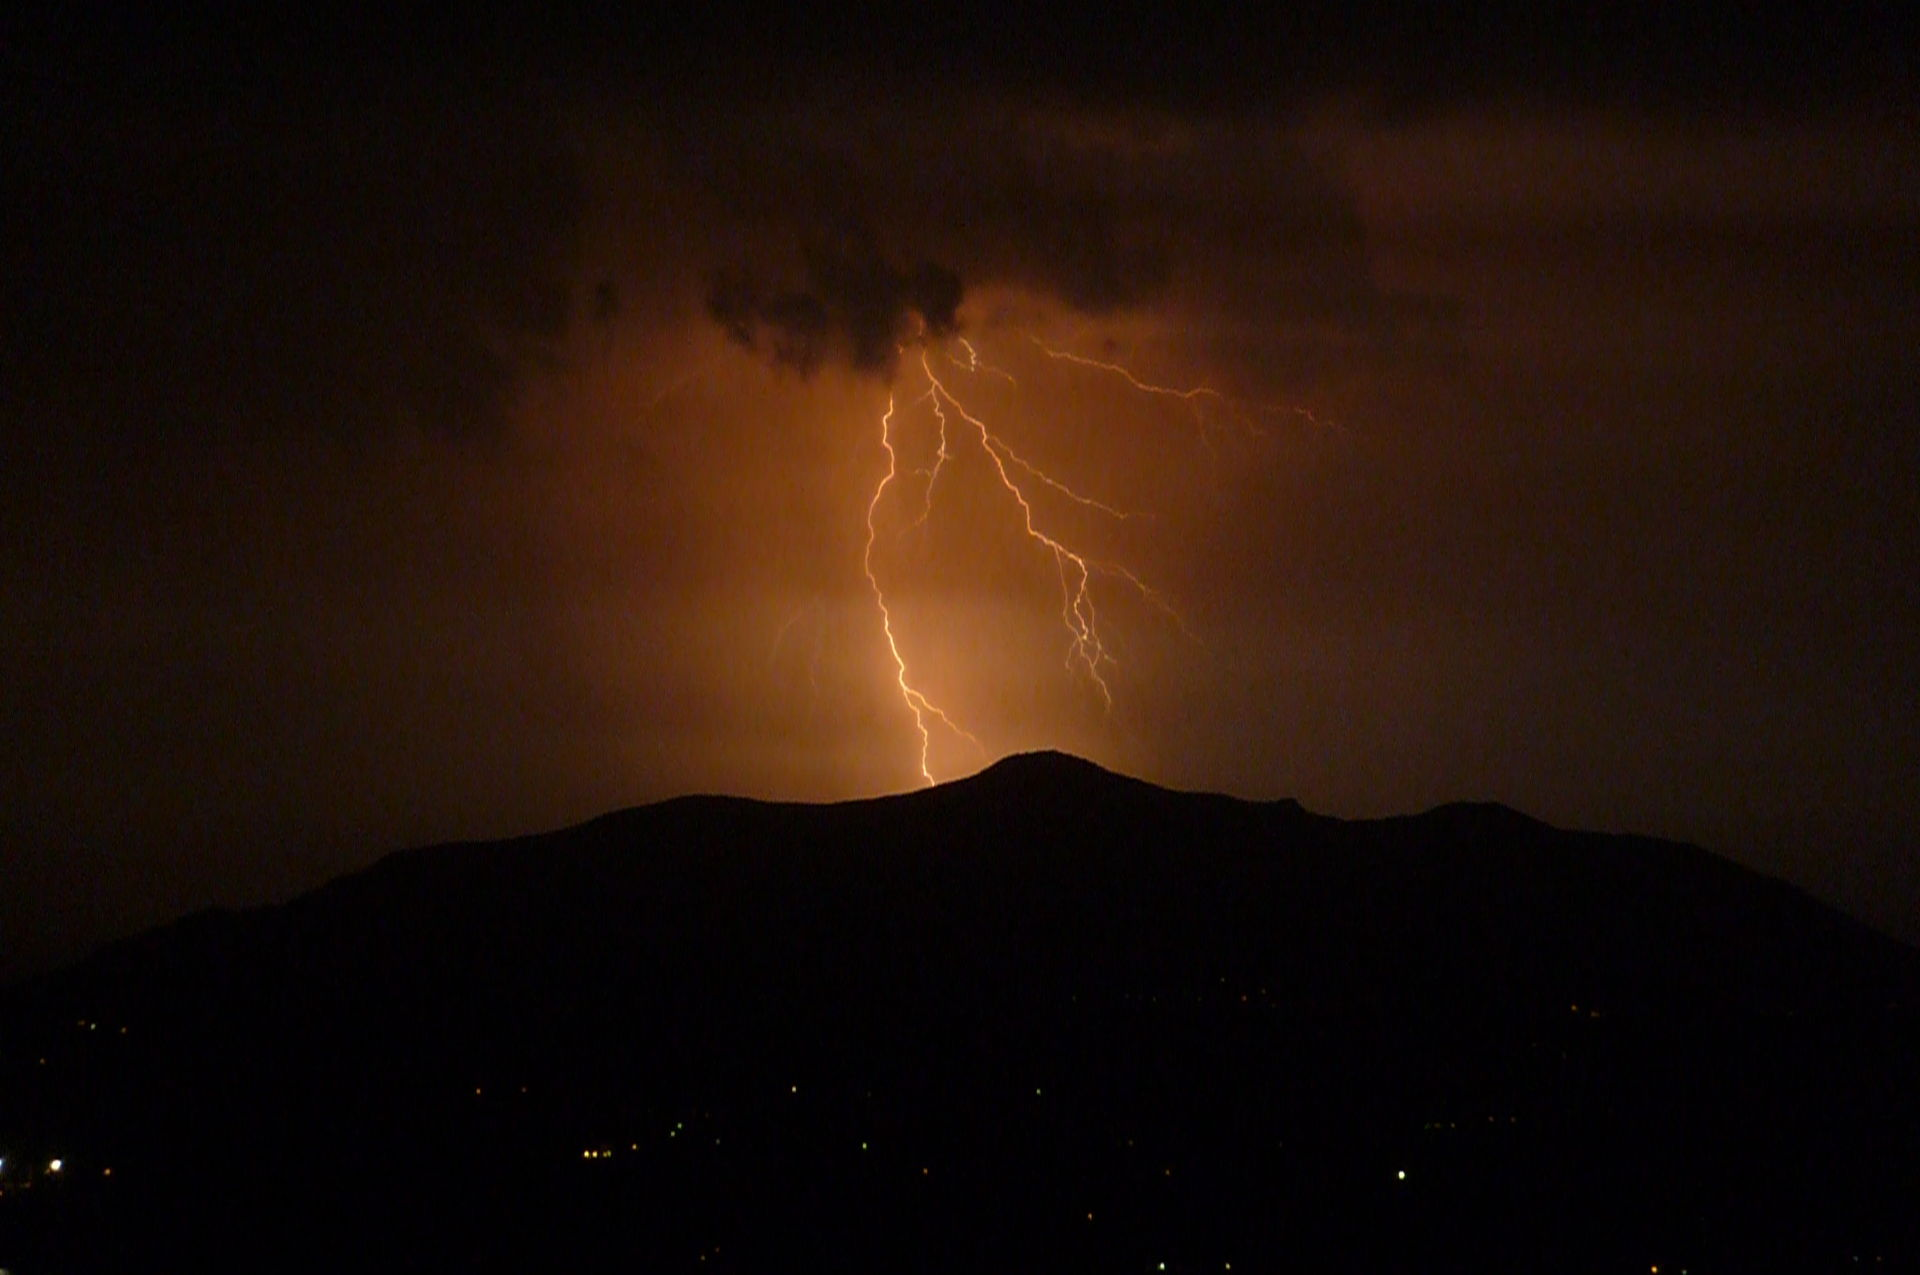 an introduction to lightning a natural phenomenon during a storm Introduction lightening, cyclone, earthquake, etc are the natural phenomena benjamin franklin, an american scientist, showed that the lightning and the spark from clothes are essentially the same phenomena.